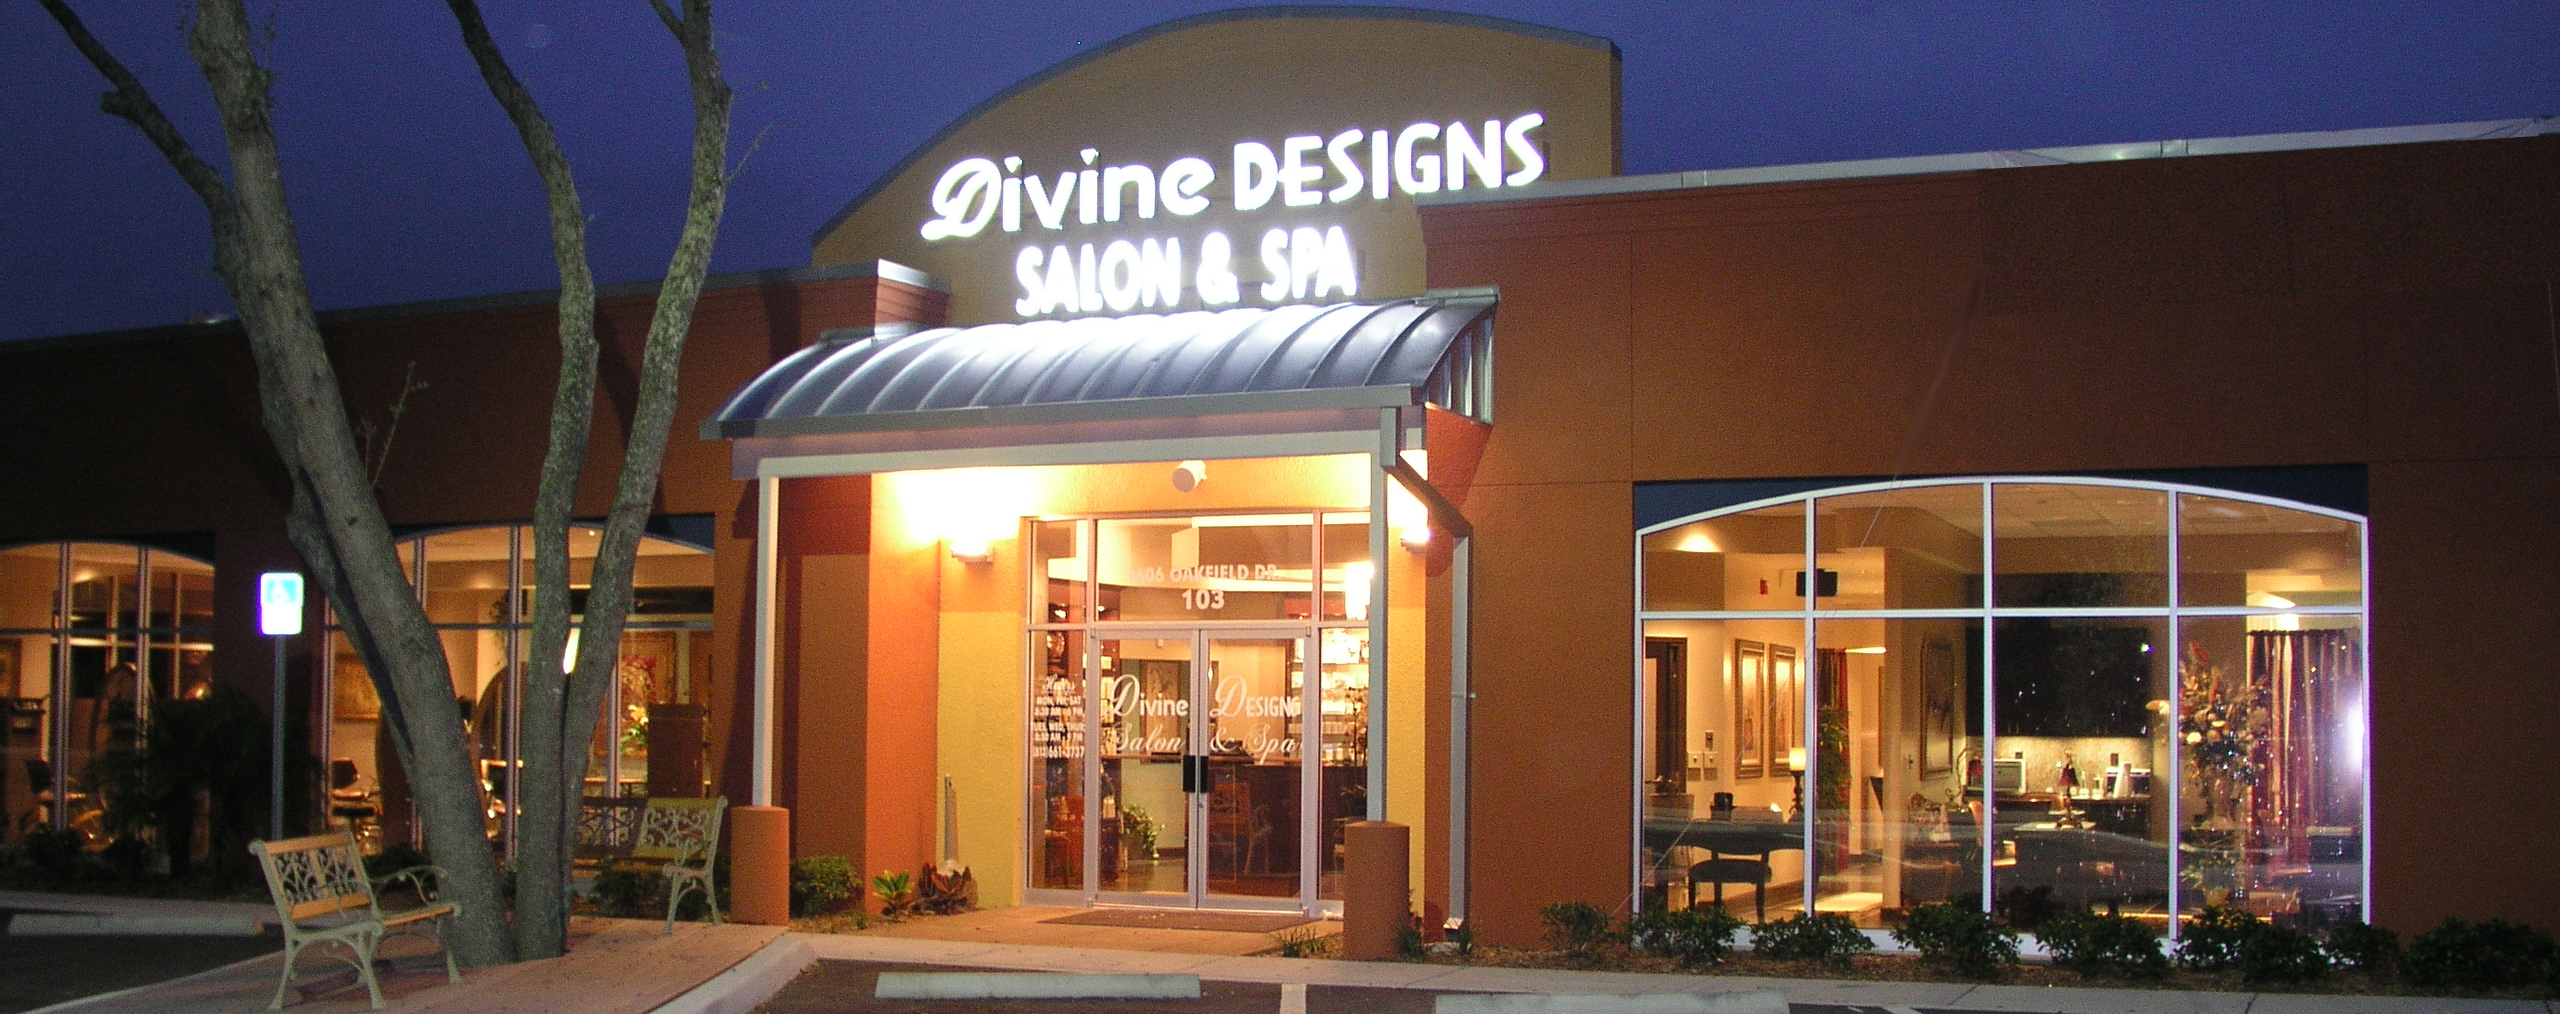 Divine Designs Salon Spa Brandon Florida